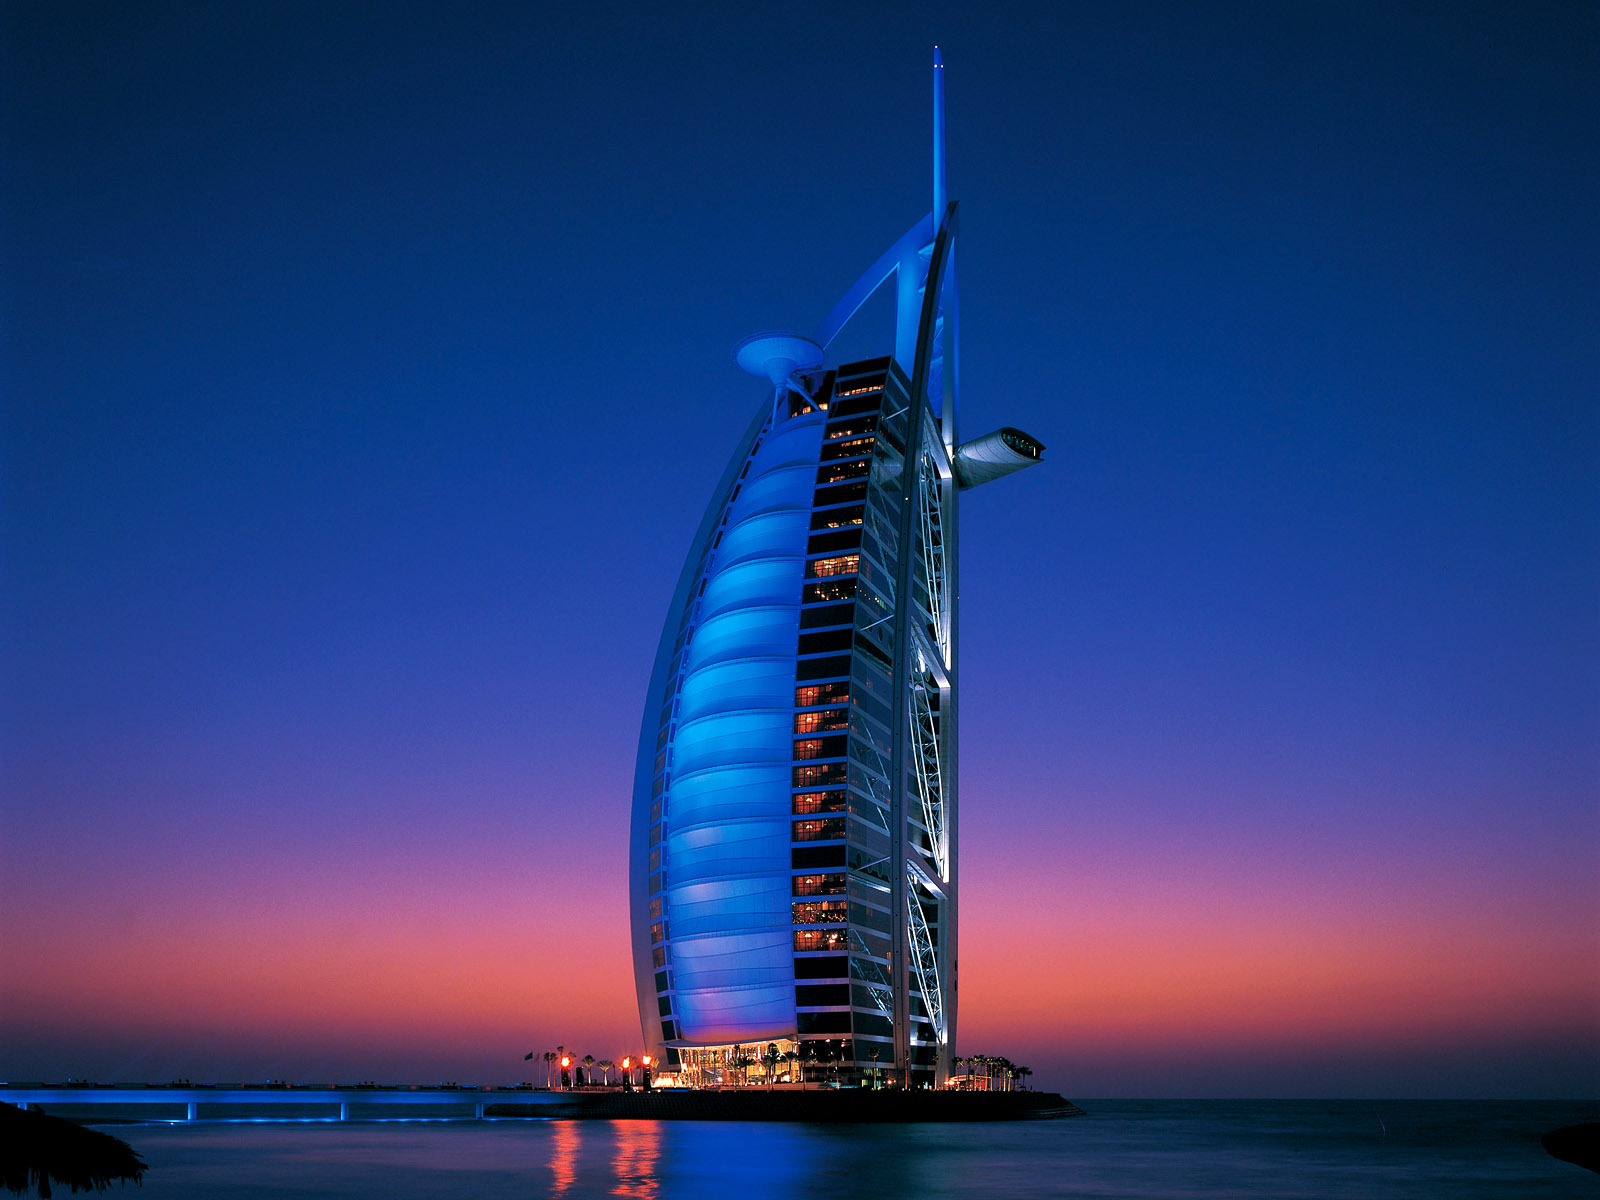 Burj al arab hotel dubai hd wallpaper for Burj arab dubai